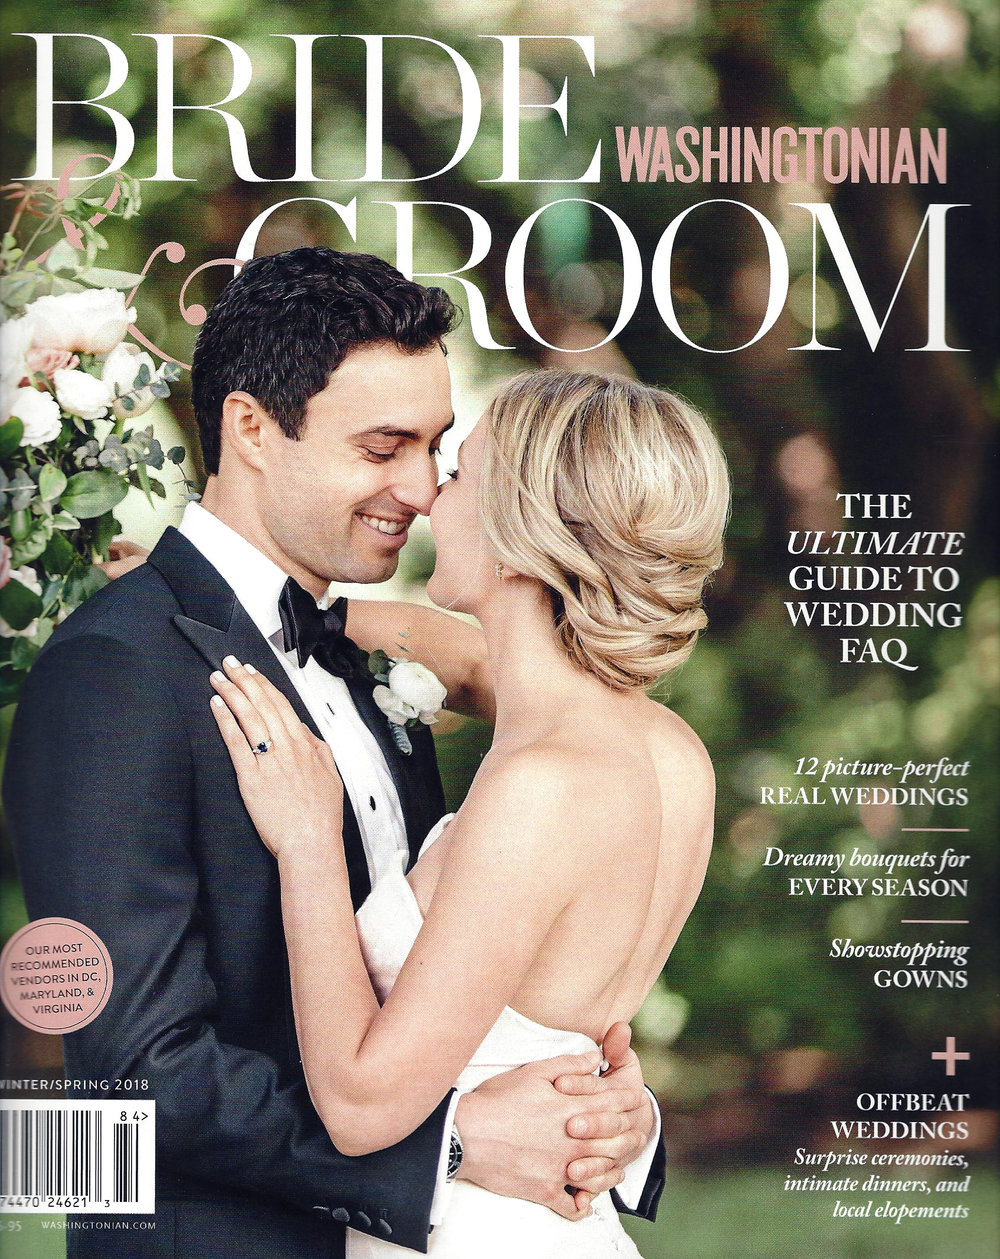 Washingtonian Bride and Groom Winter Spring 2018 cover.jpeg